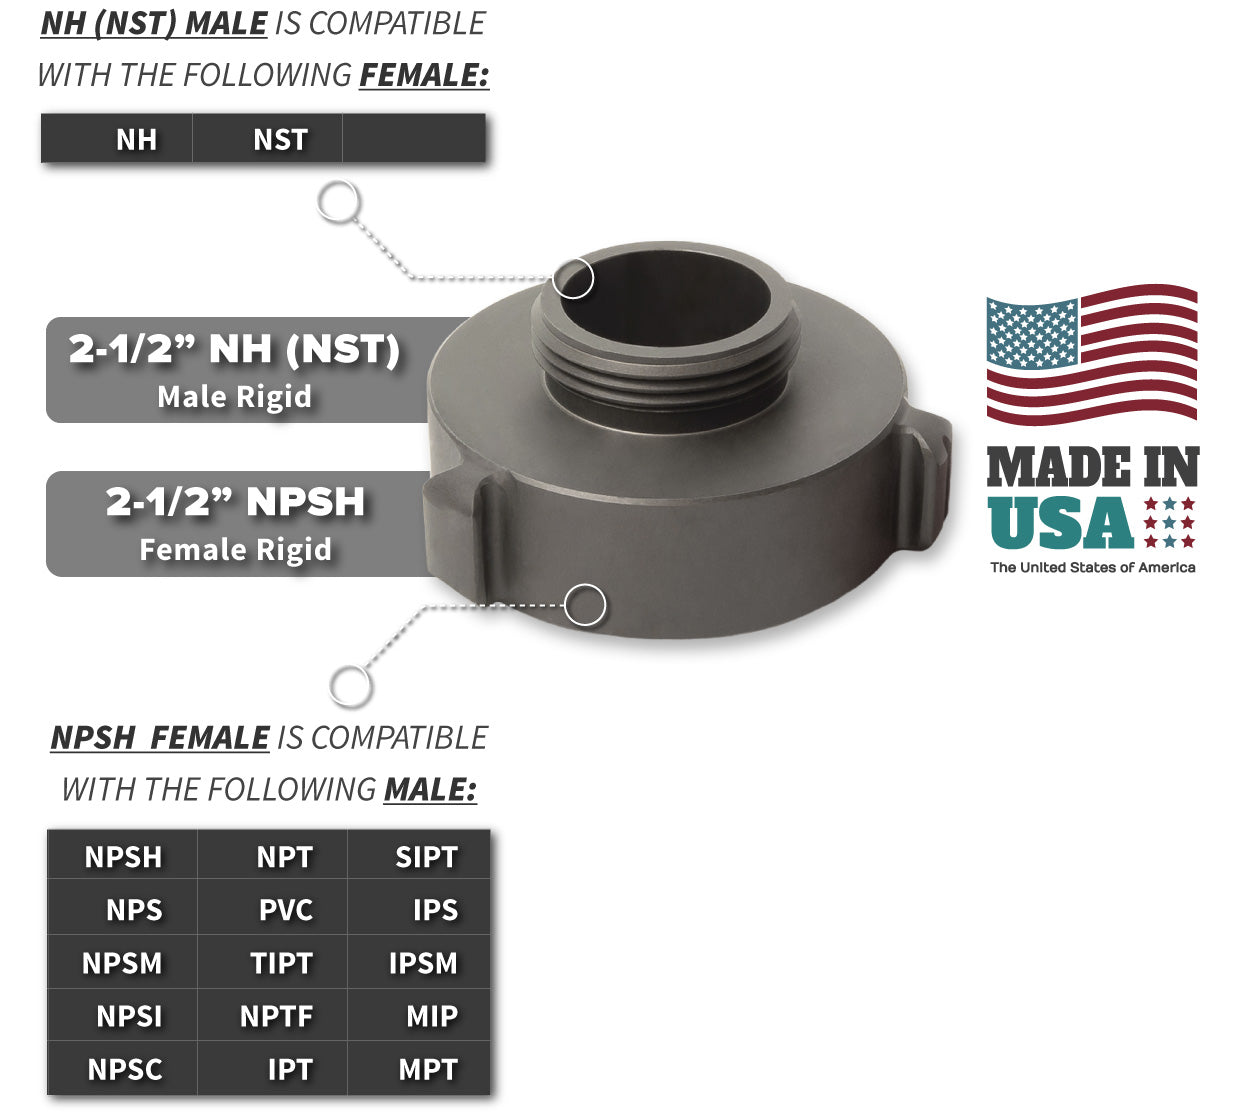 2.5 Inch NPSH Female x 2.5 Inch NH-NST Male Compatibility Thread Chart